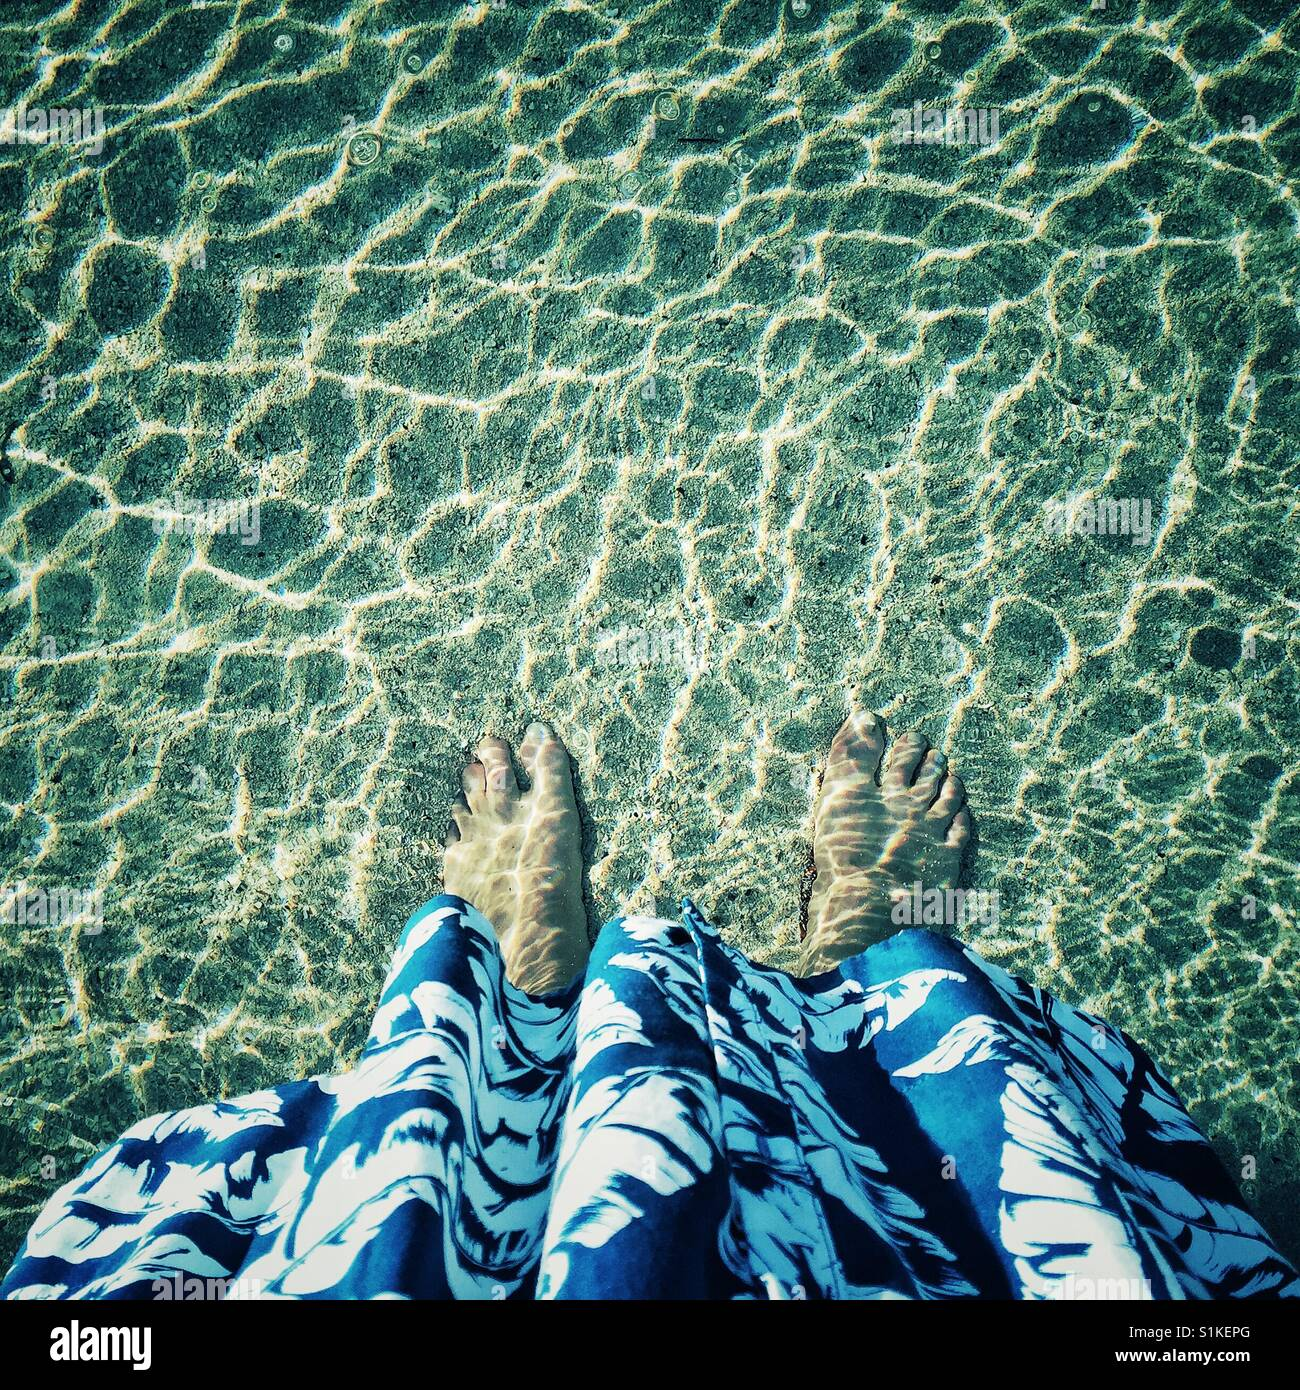 Tropical dress and bare feet in glimmering ocean - Stock Image